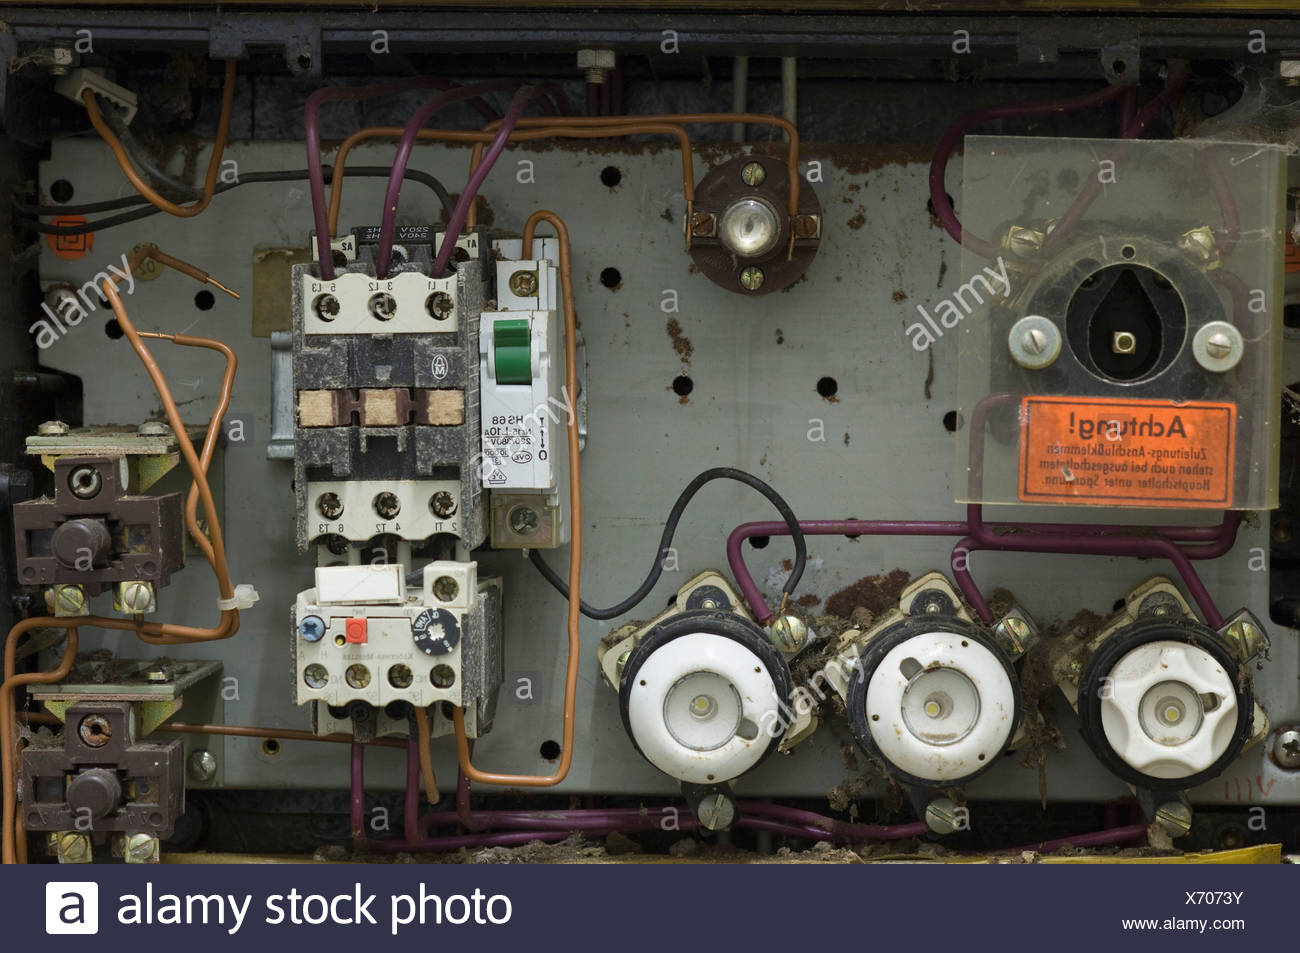 Germany, Antique old ruined fuse box - Stock Image